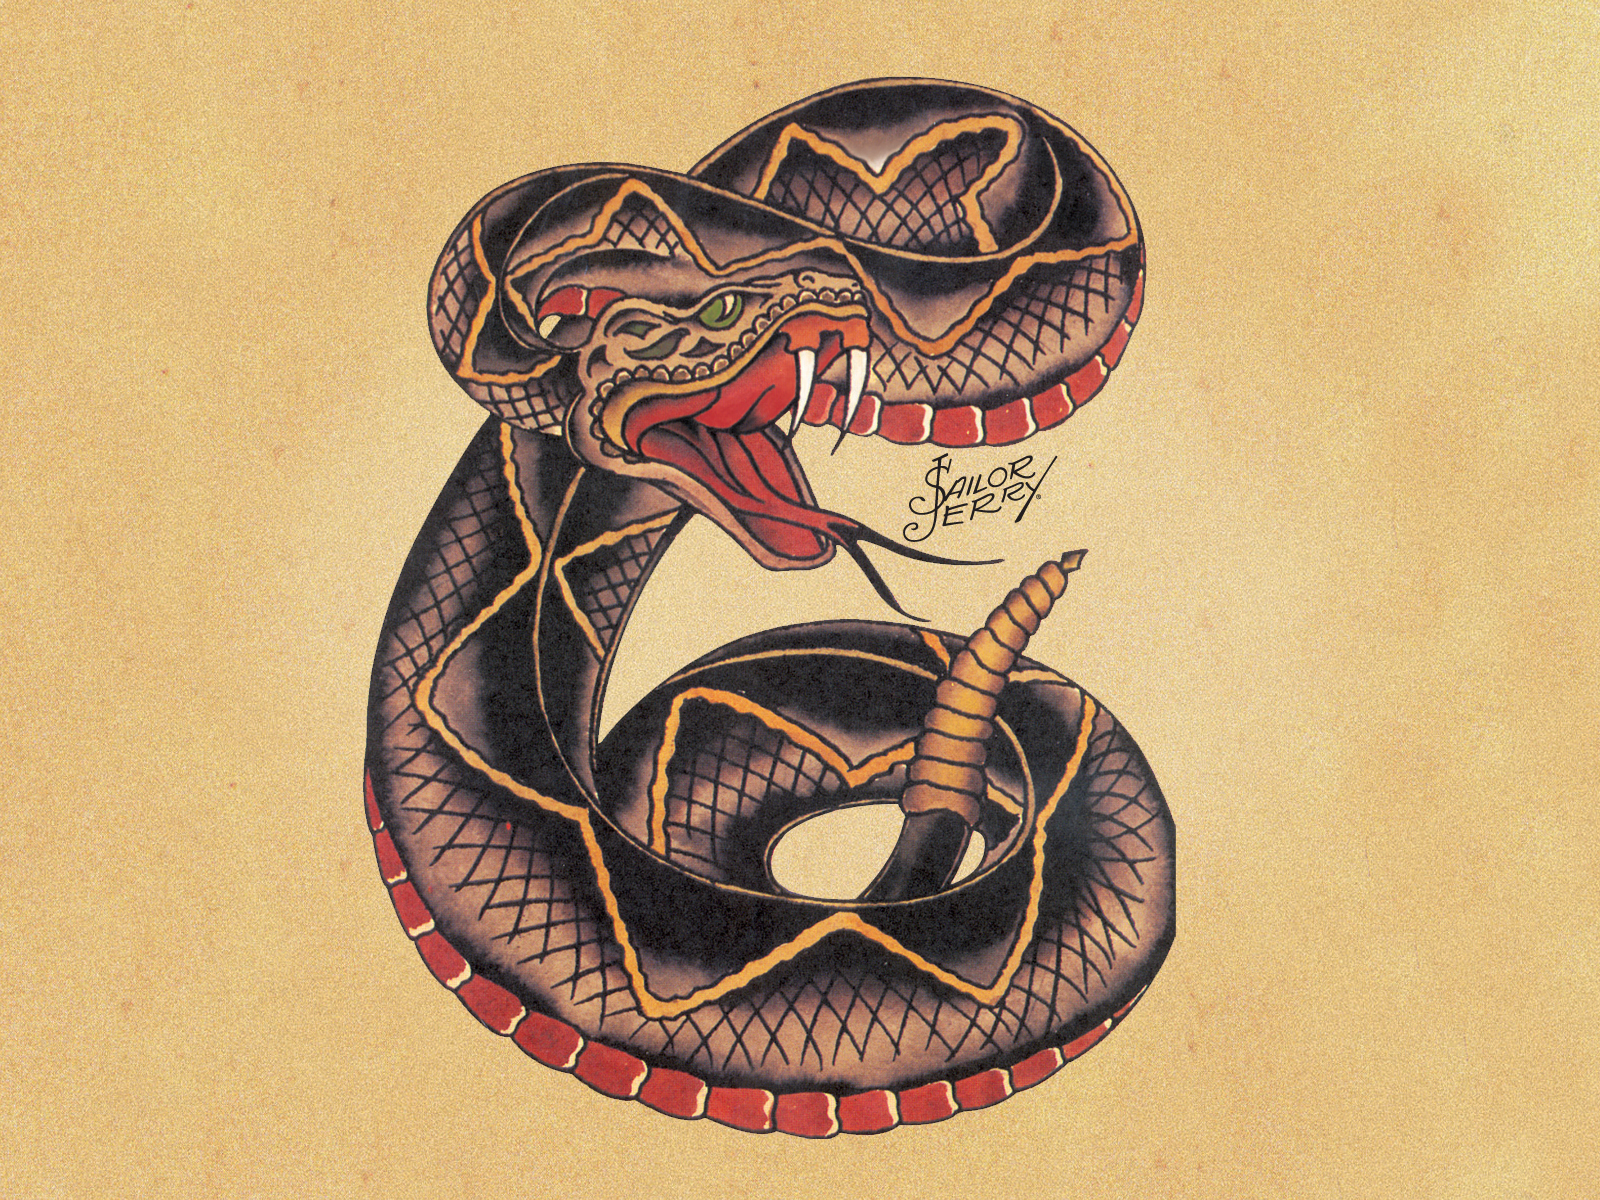 Sailor jerry tattoo website